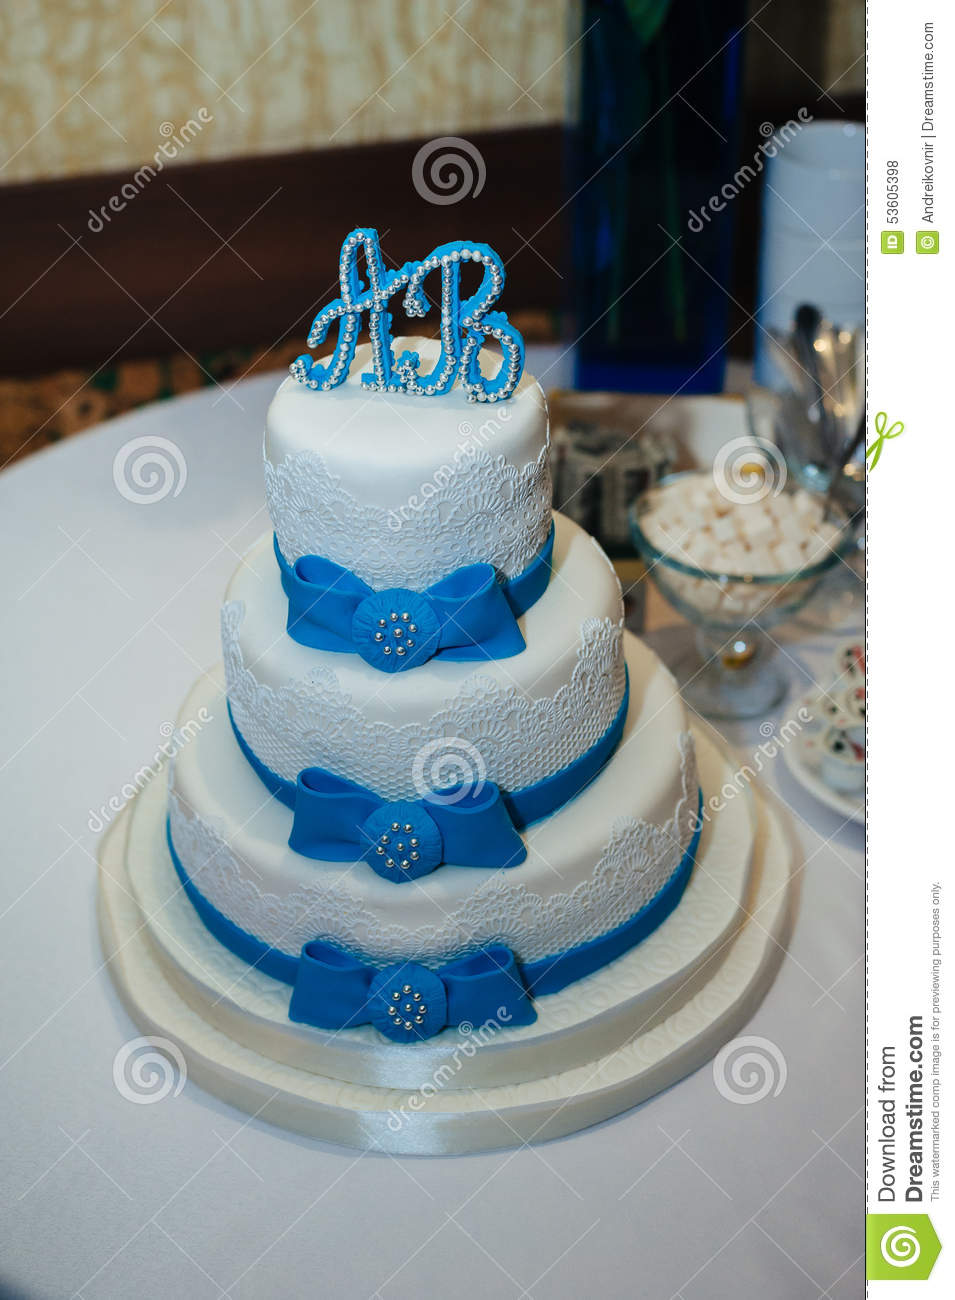 Wedding cake in white and blue combination stock photo image of wedding cake in white and blue combination izmirmasajfo